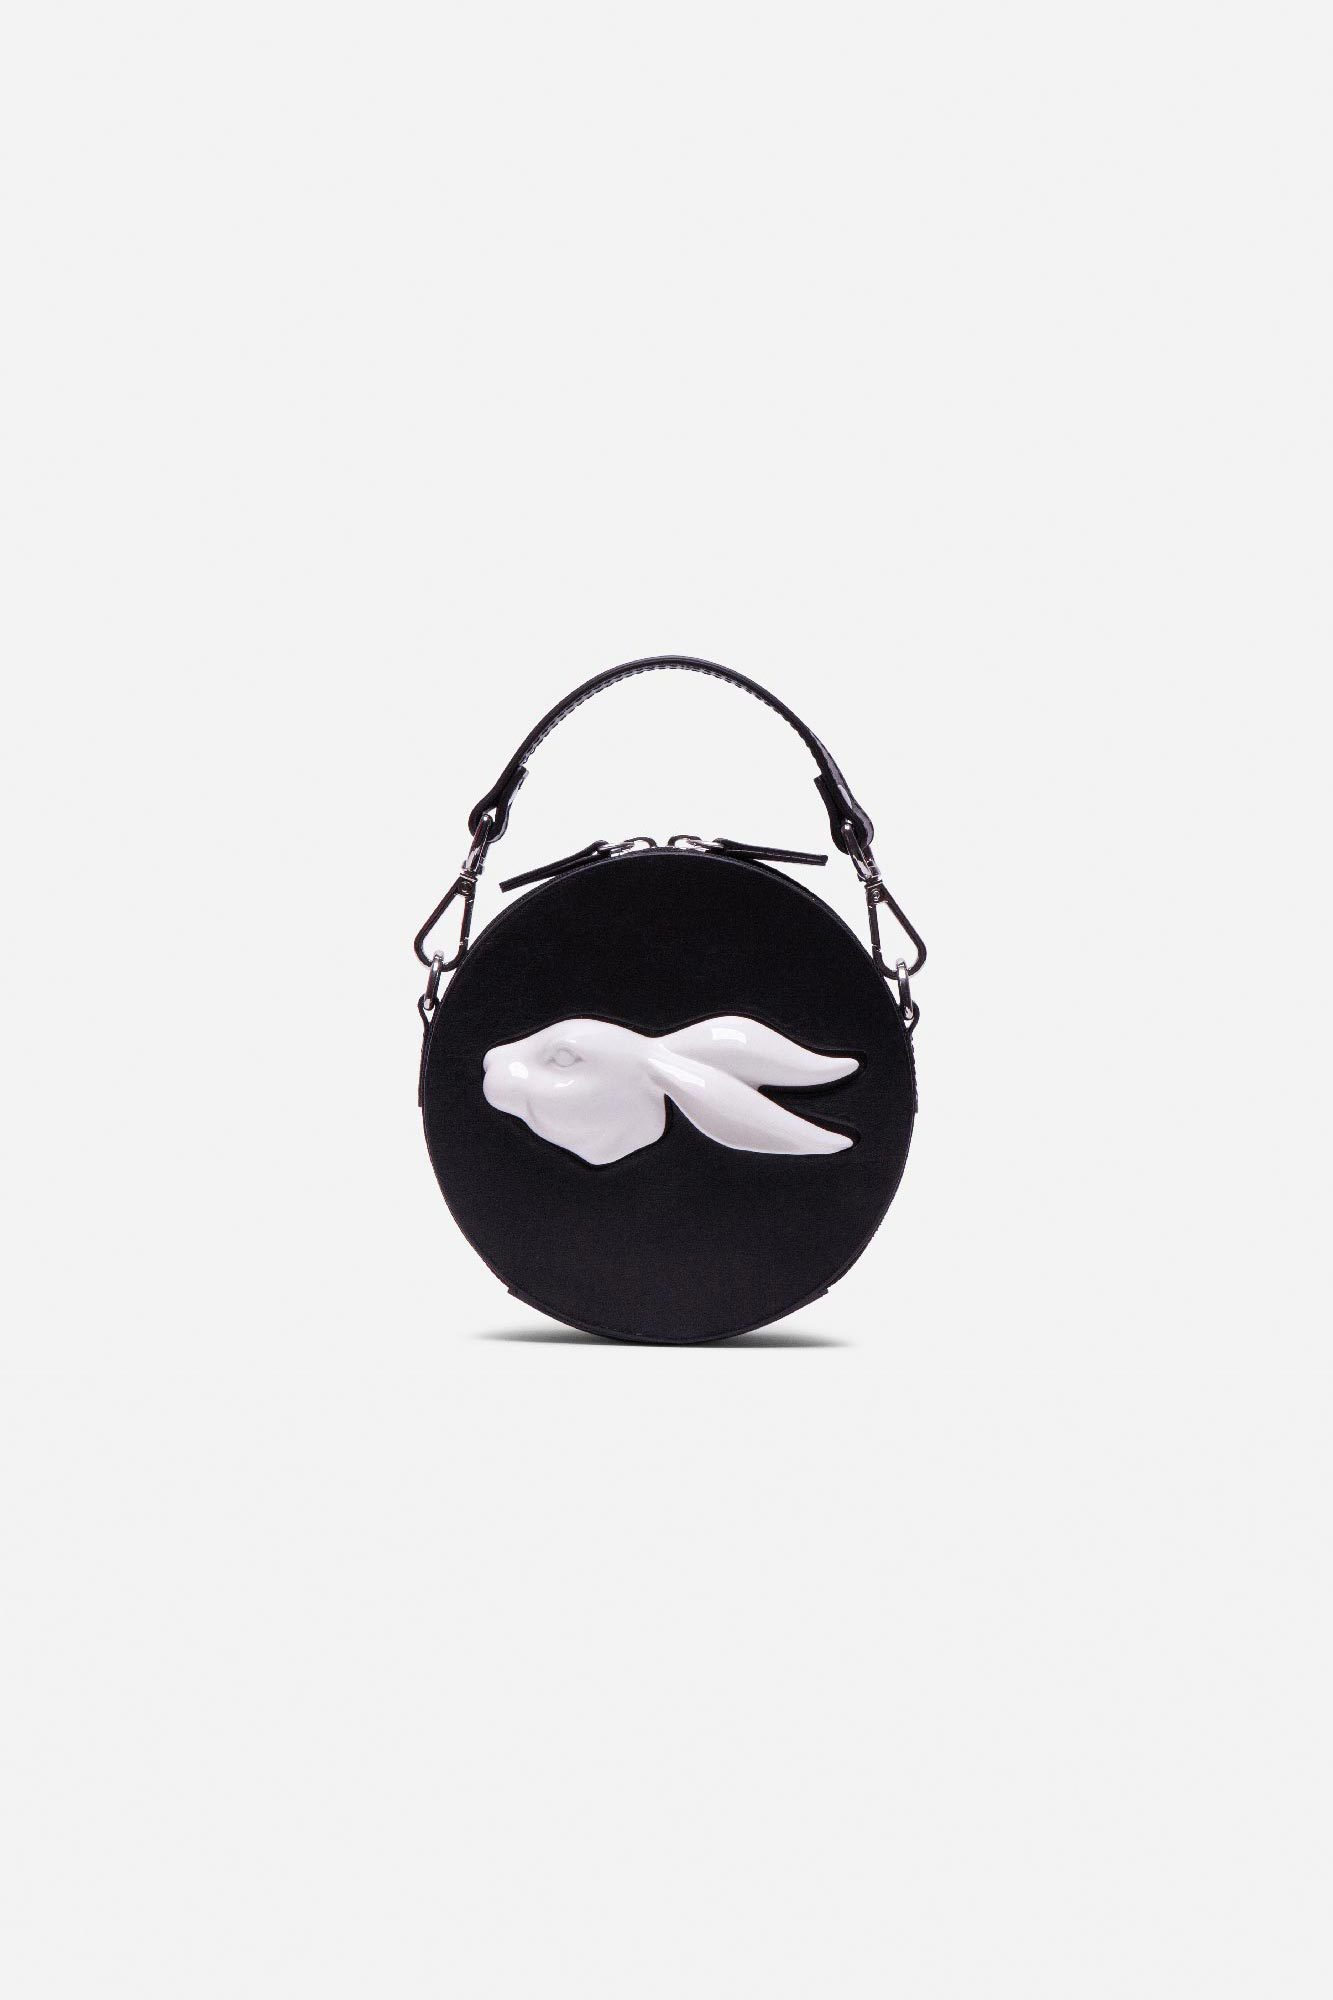 Round Mini Rabbit Head Bag Vegetable Black